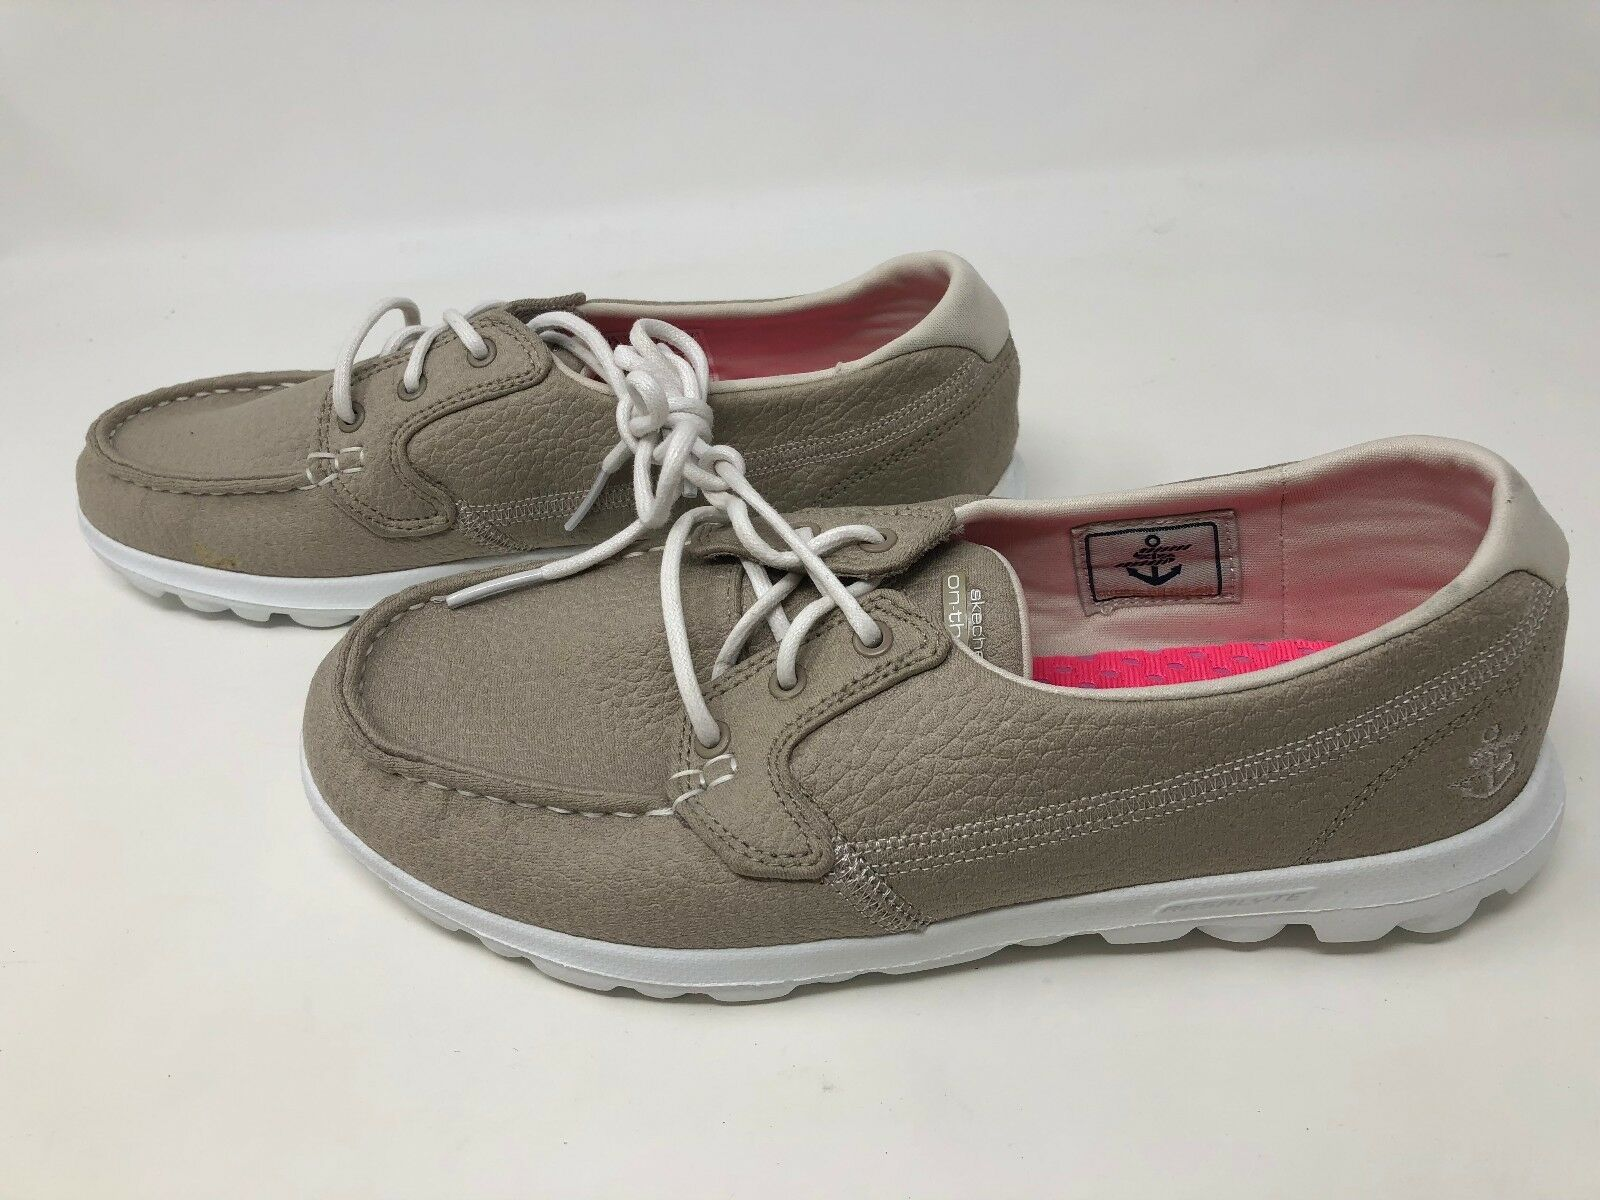 Women's Skechers ON THE GO CRUISE Boat shoes           16F